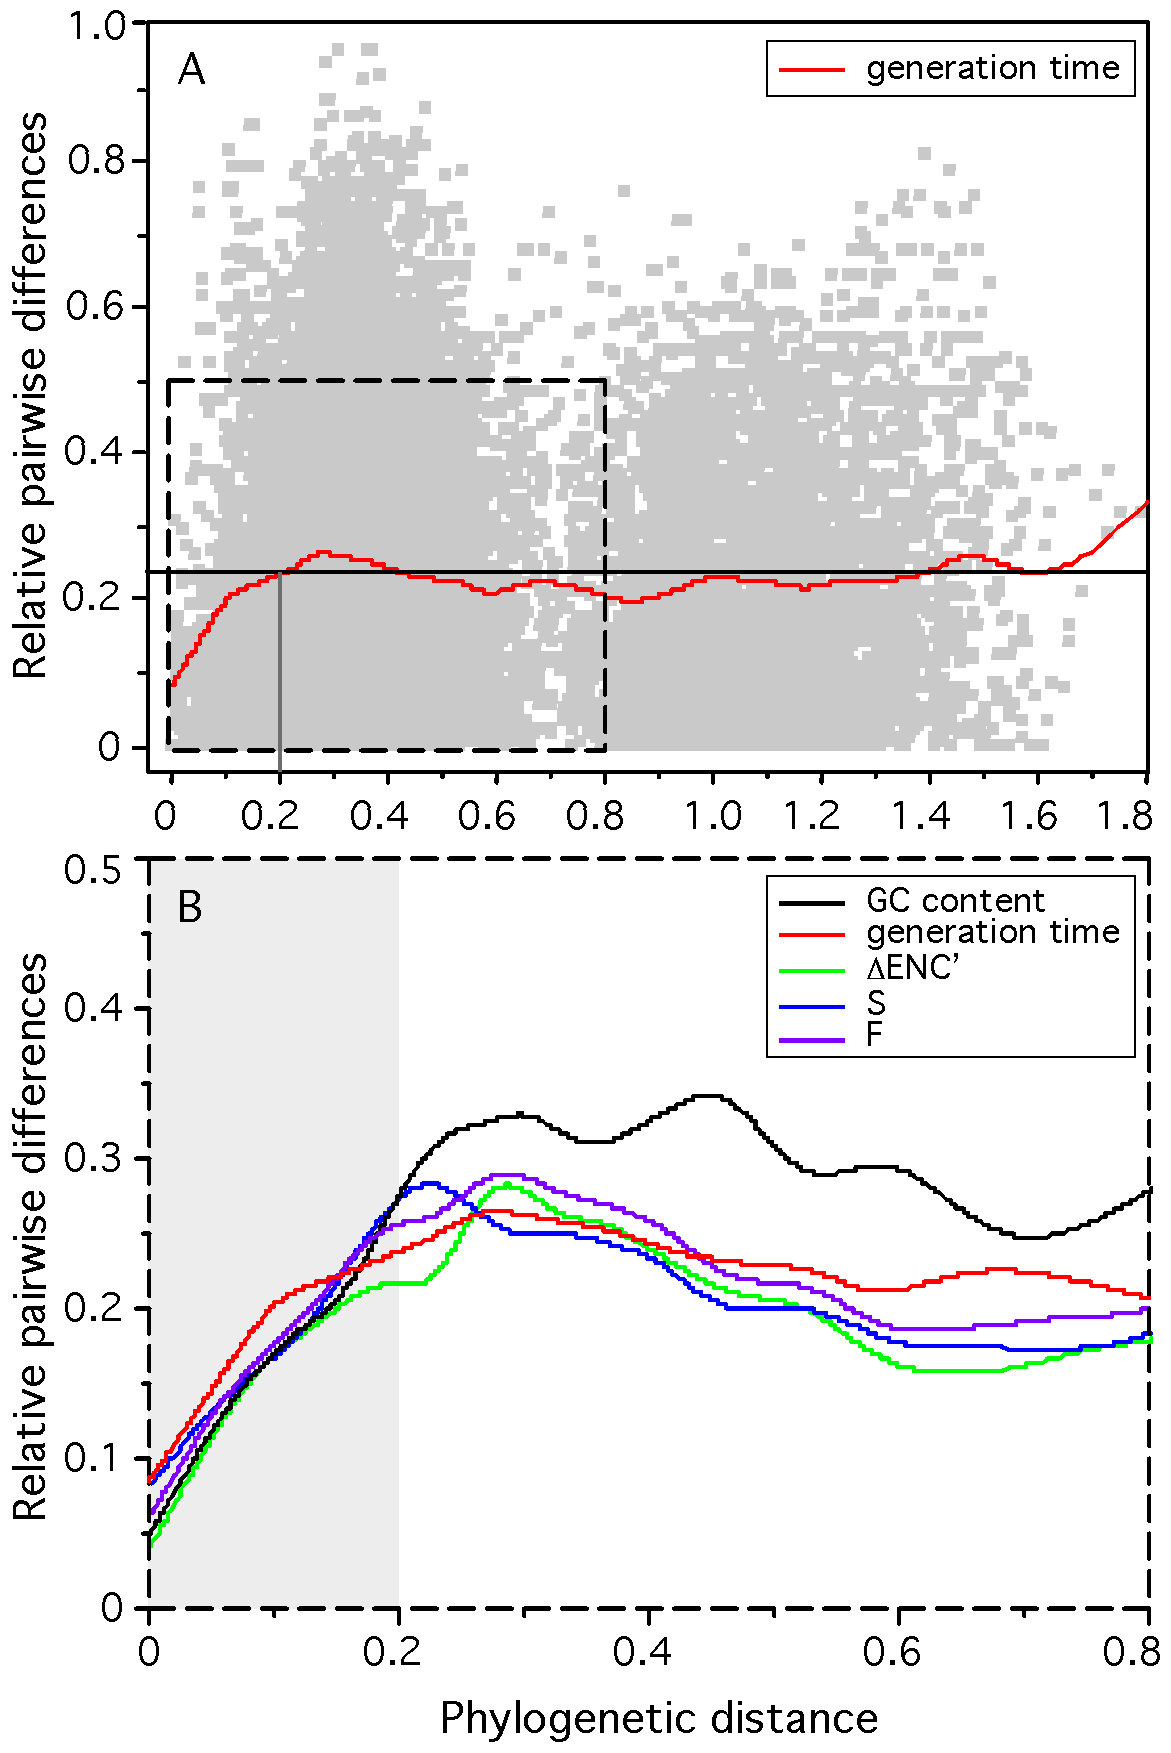 Relative difference between the minimum generation time, codon usage bias indices, and G+C content of pairs of organisms and their phylogenetic distance for 214 prokaryotes.